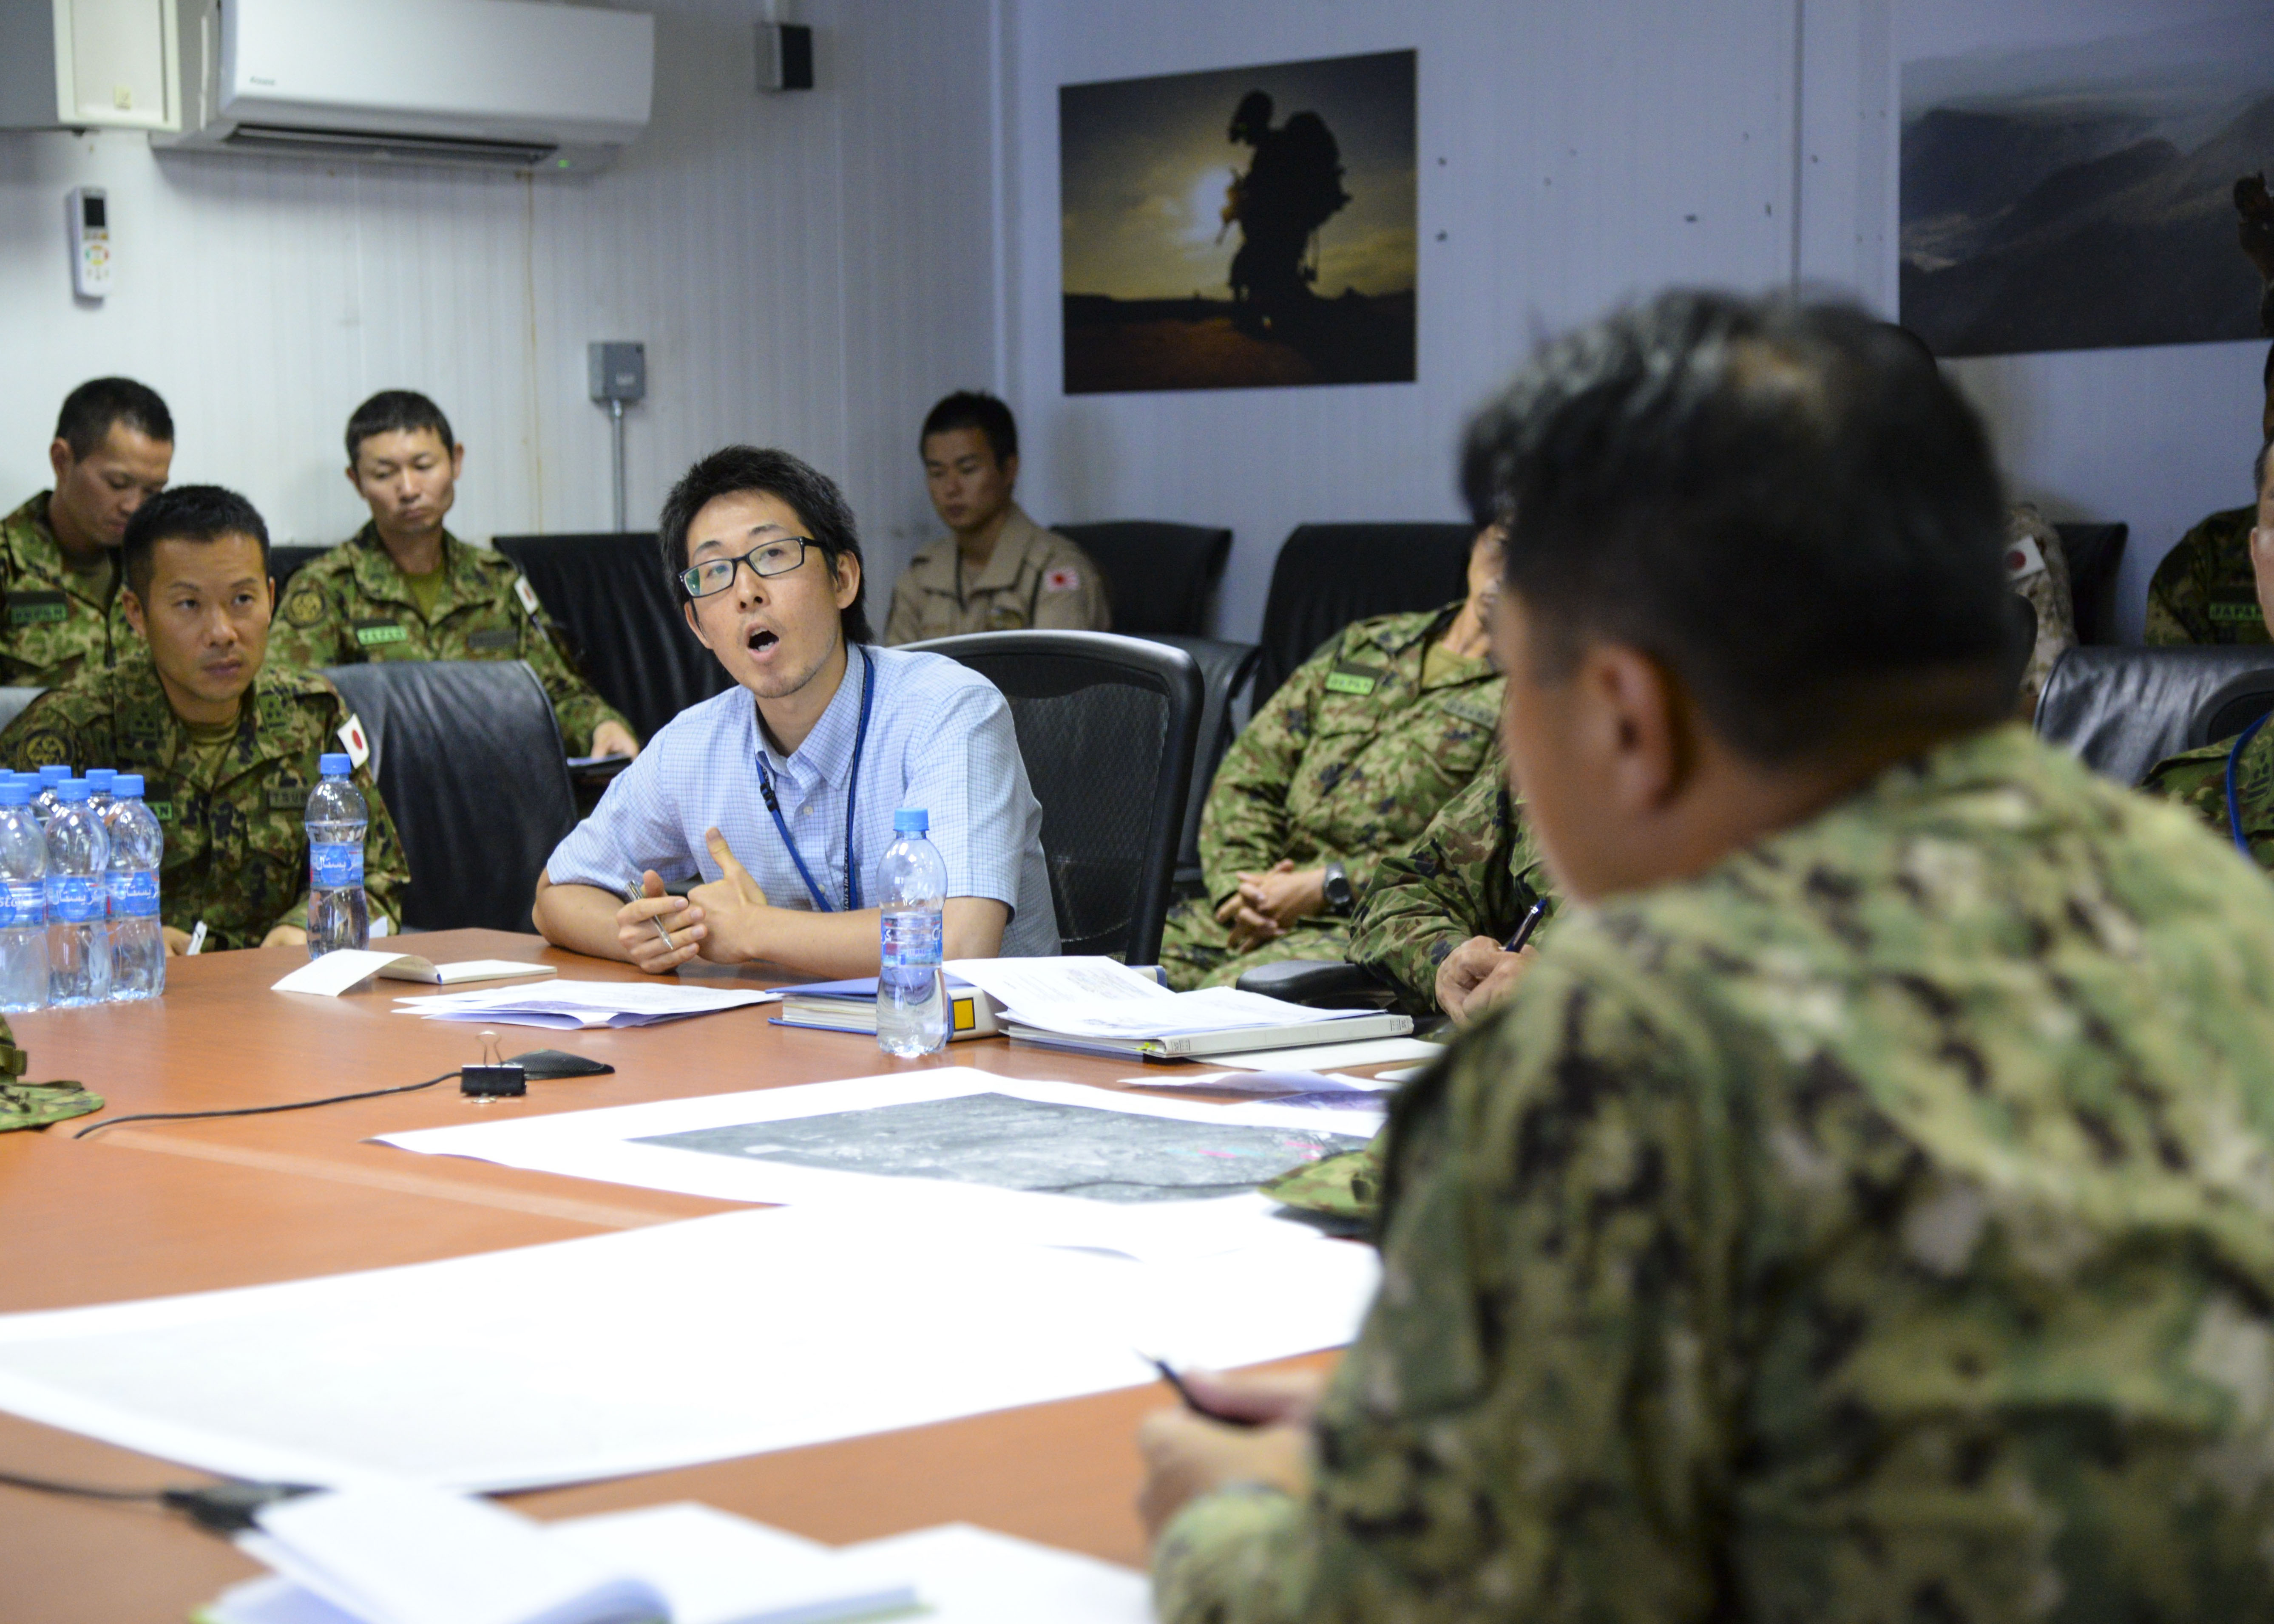 Japanese and Combined Joint Task Force-Horn of Africa service members meet for a tabletop exercise to discuss how they can support each other in an event involving the evacuation of Americans or Japanese from a hostile location in Africa, Aug. 27-28, 2016 at the Japanese base in Djibouti. During the exercise, both forces discussed route planning, logistics, equipment maintenance, how military personnel would be involved, medical support and use of air and ground transportation for evacuees. The plans also examined their strengths and weaknesses and reassessed the movement of evacuees to safety. (U.S. Air Force photo by Staff Sgt. Benjamin Raughton/Released)